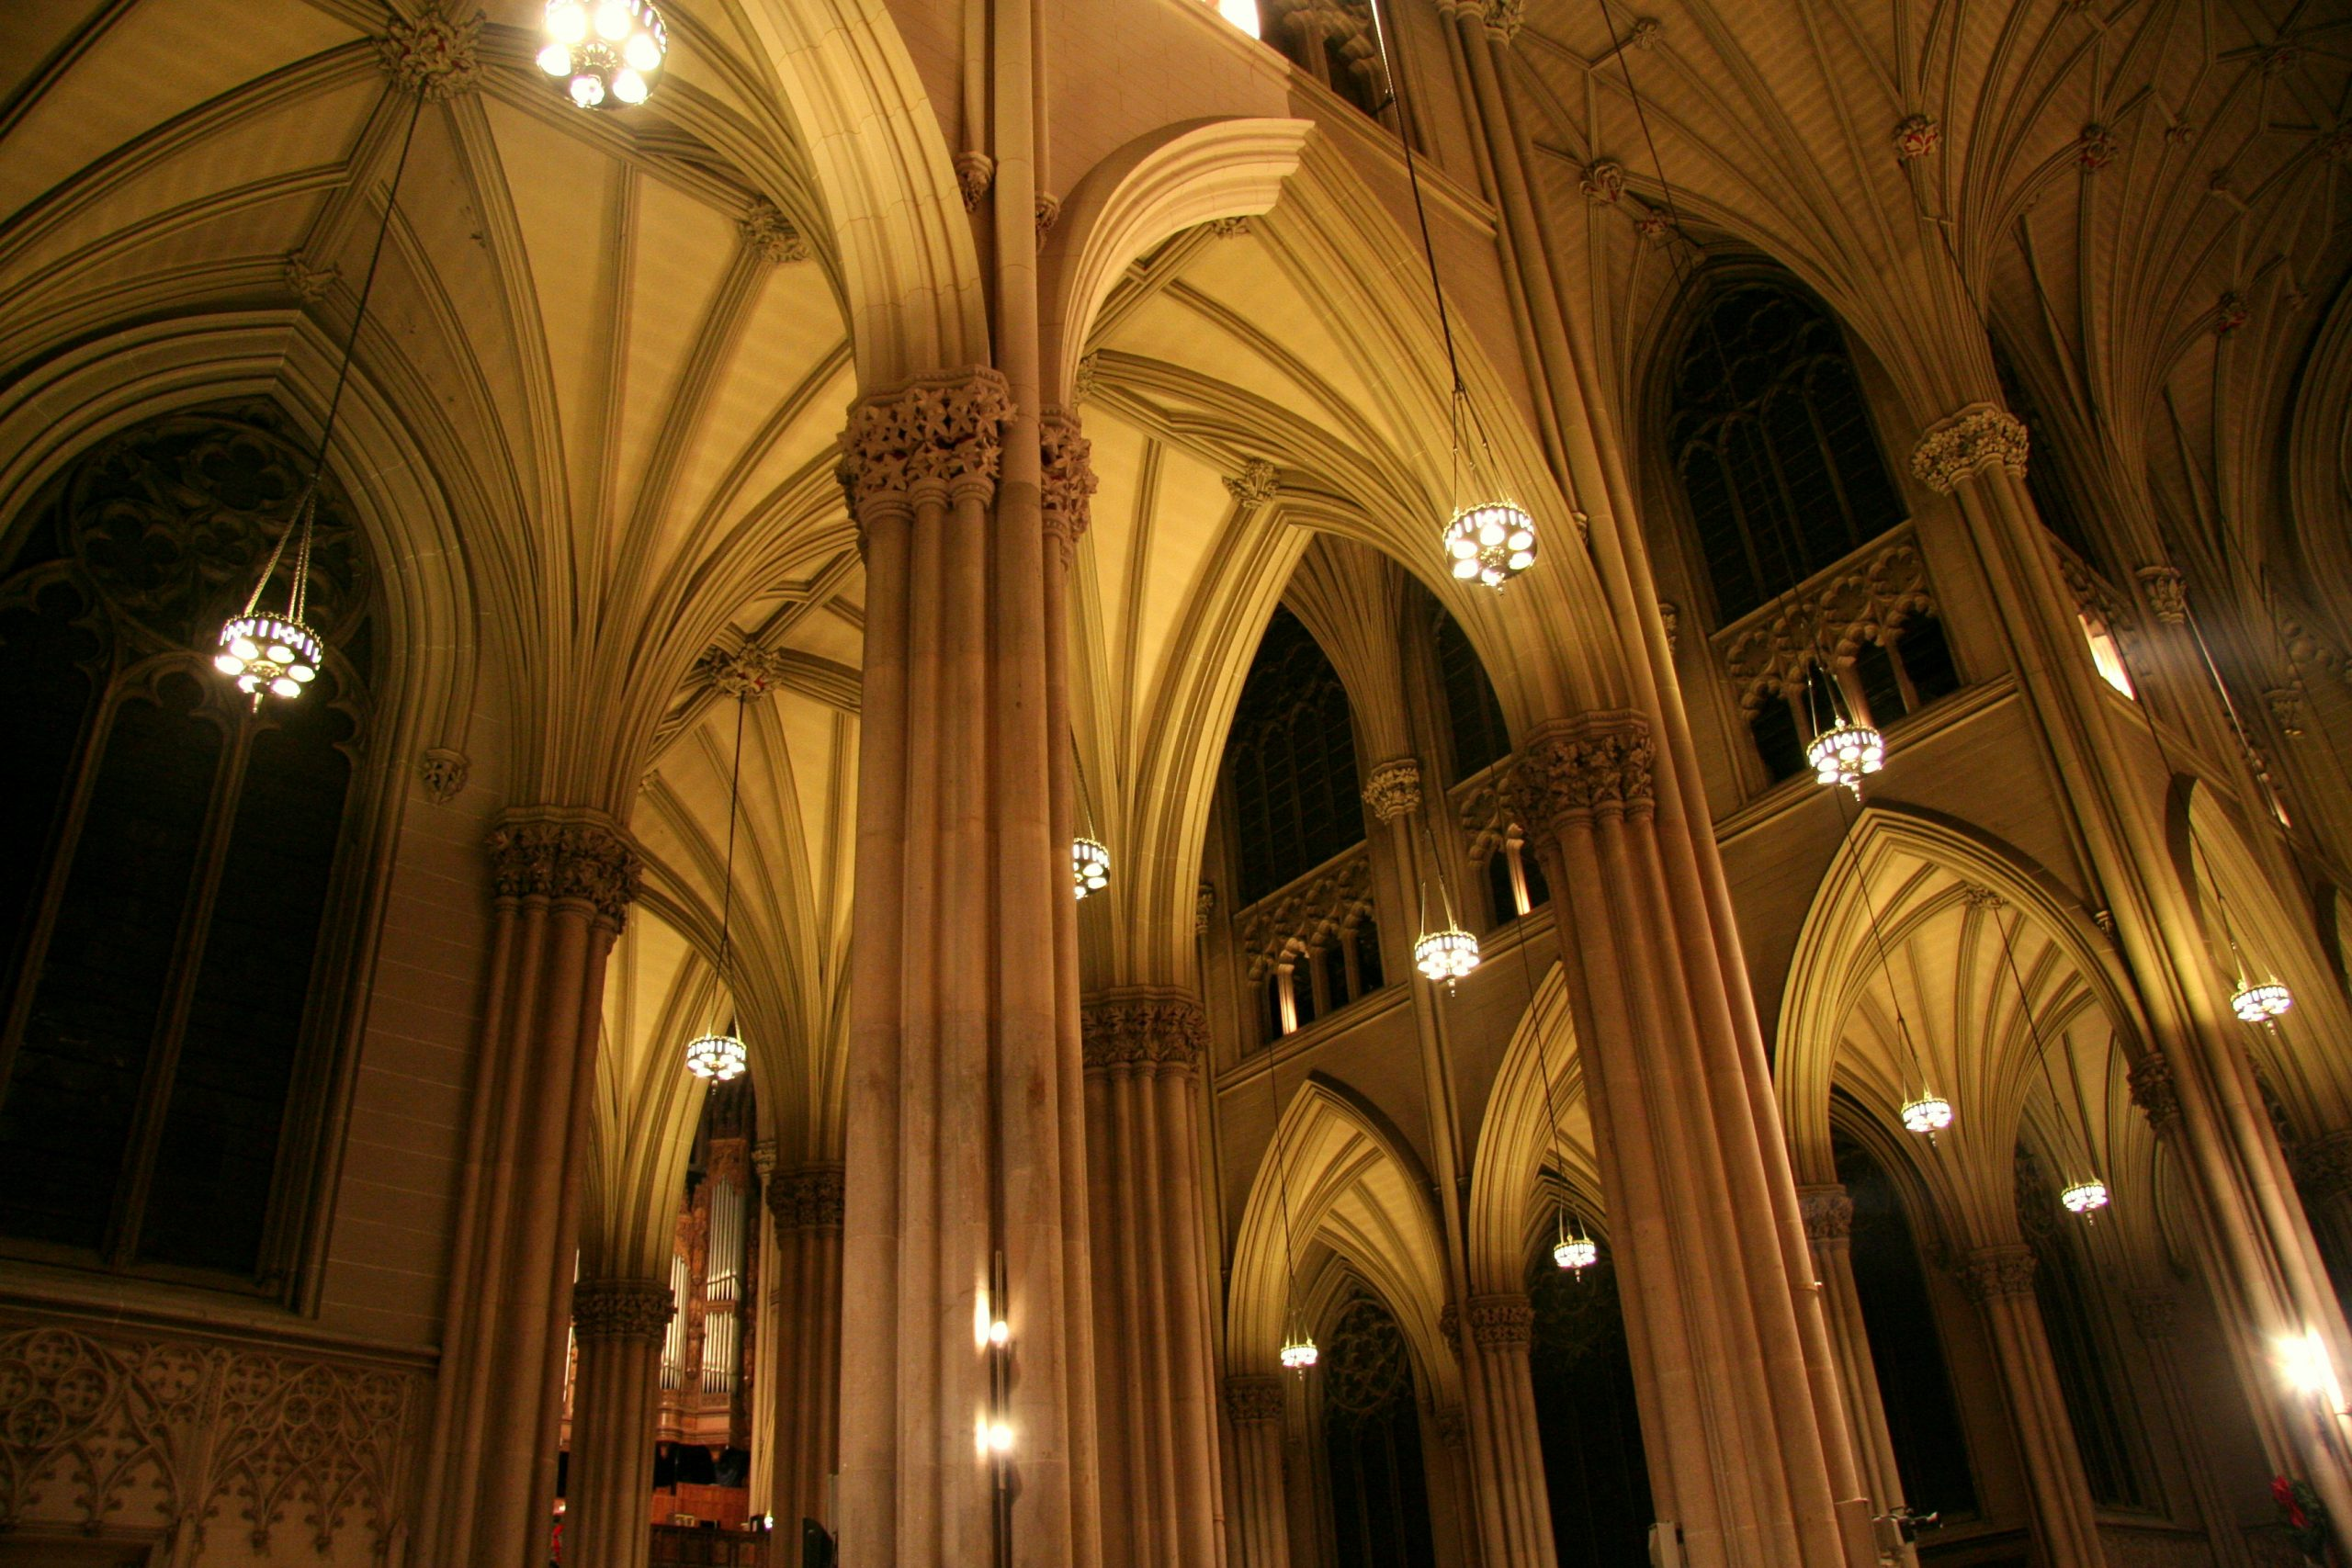 2010, St. Patrick's Cathedral, New York, New York